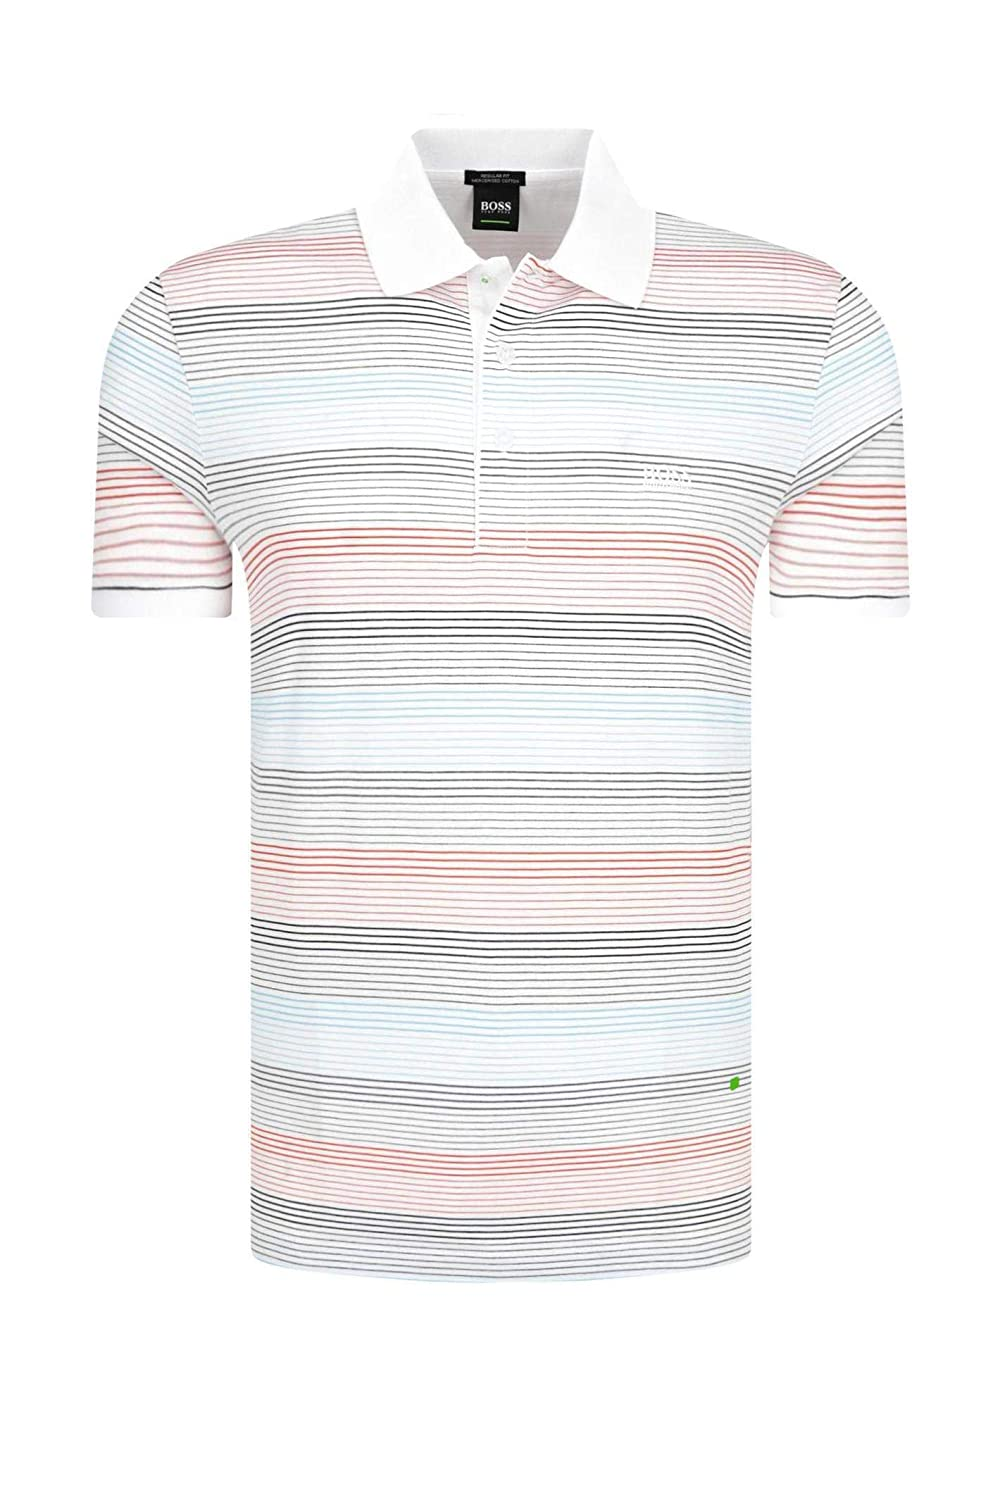 ce6756cf8 Hugo Boss Polo T Shirts – EDGE Engineering and Consulting Limited